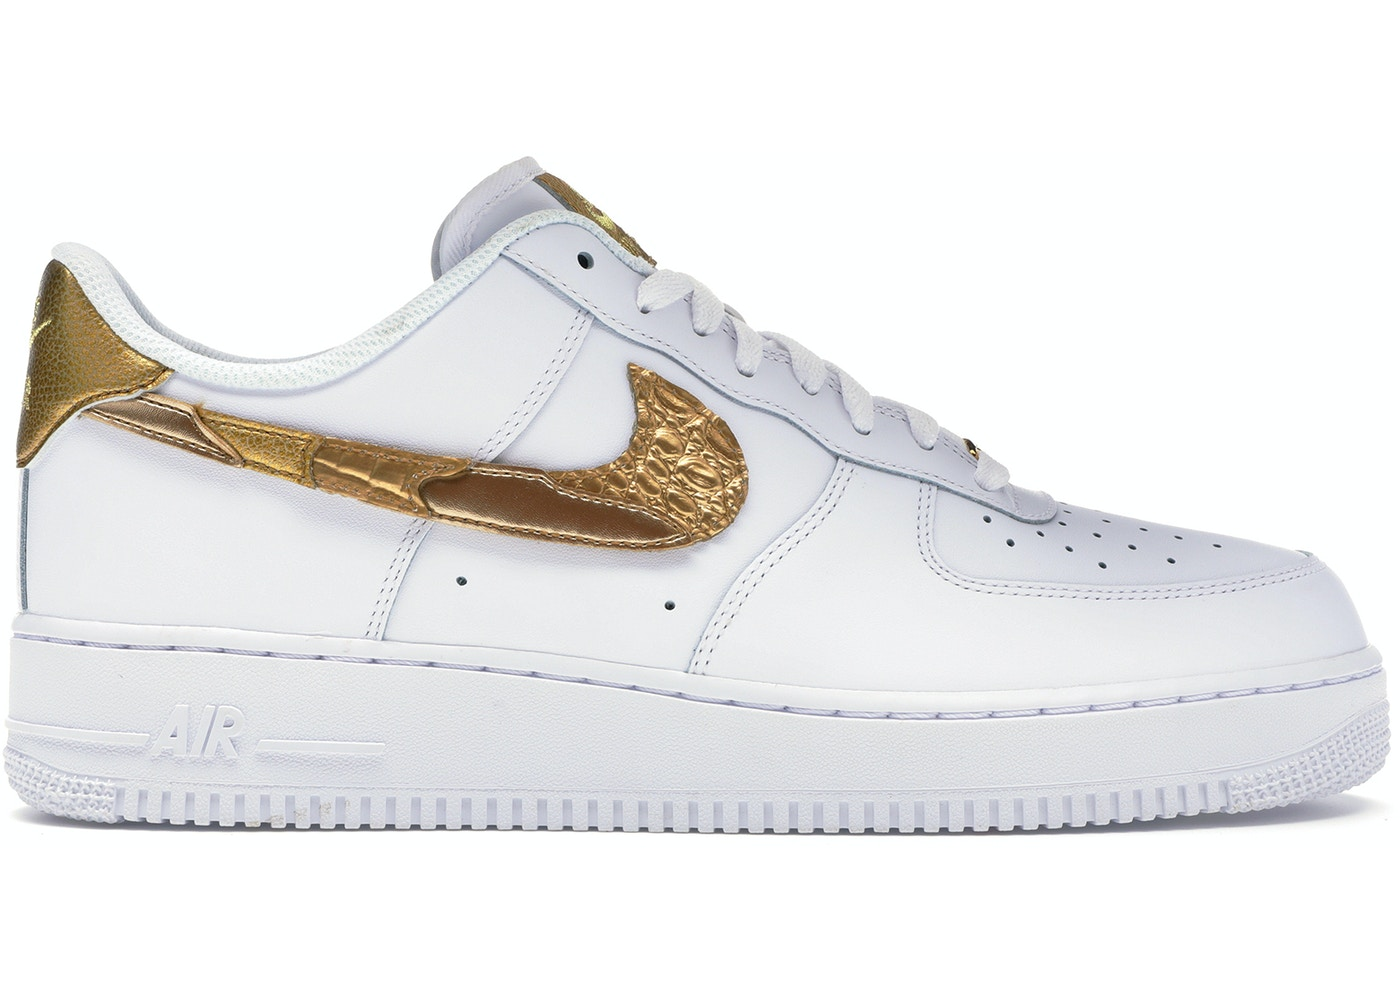 feebfb21274a Air Force 1 Low CR7 Golden Patchwork